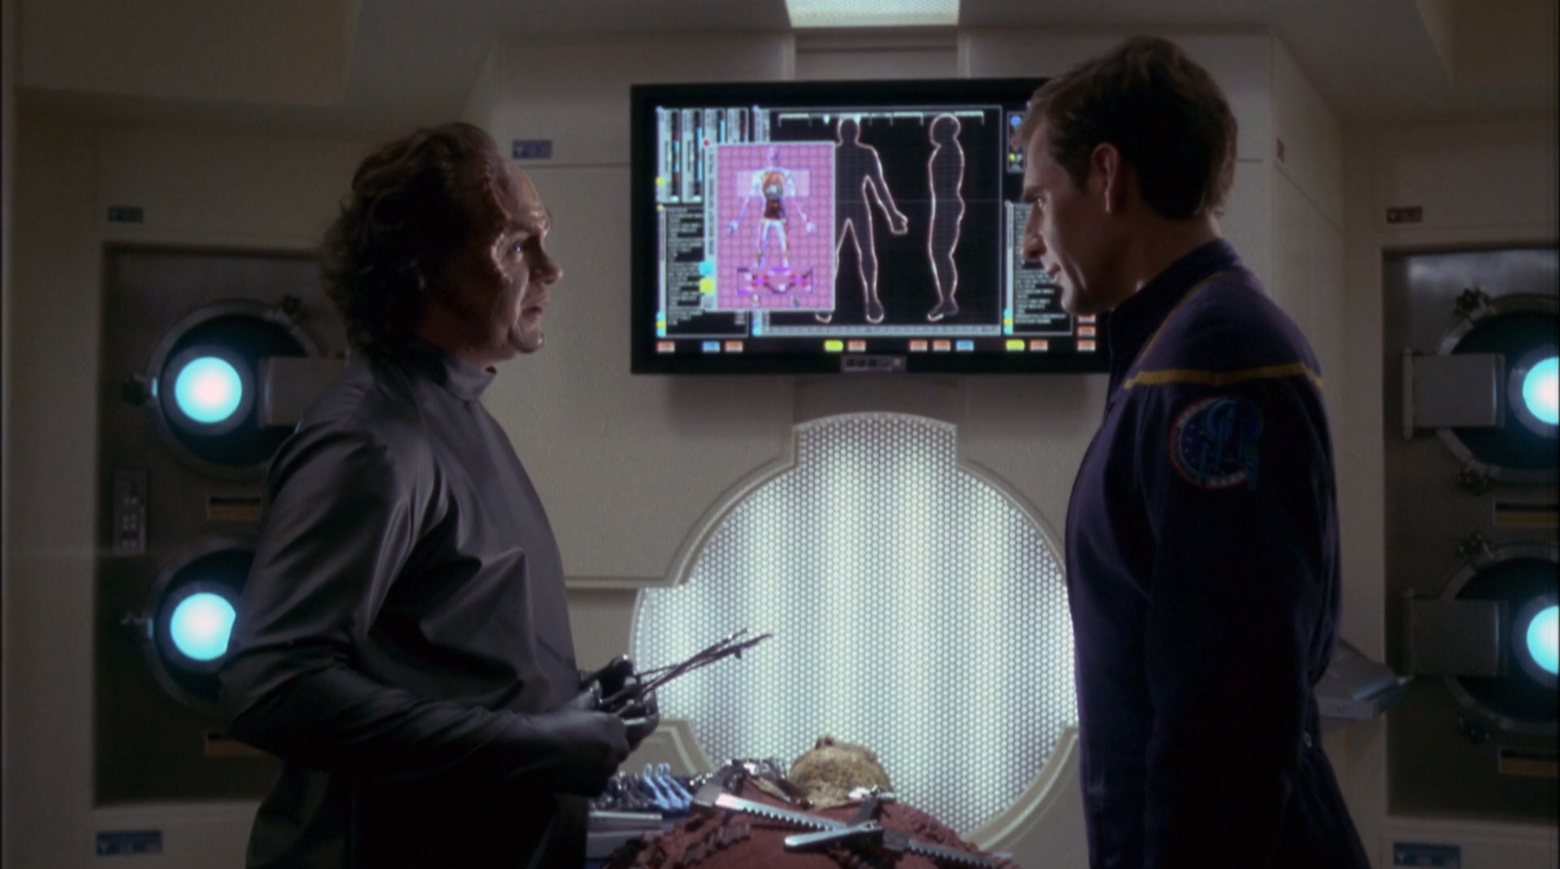 Captain Archer and Doctor Phlox discussing the new Sulliban enemy - Enterprise Star Trek Enterprise Season 1 Blu-ray Review